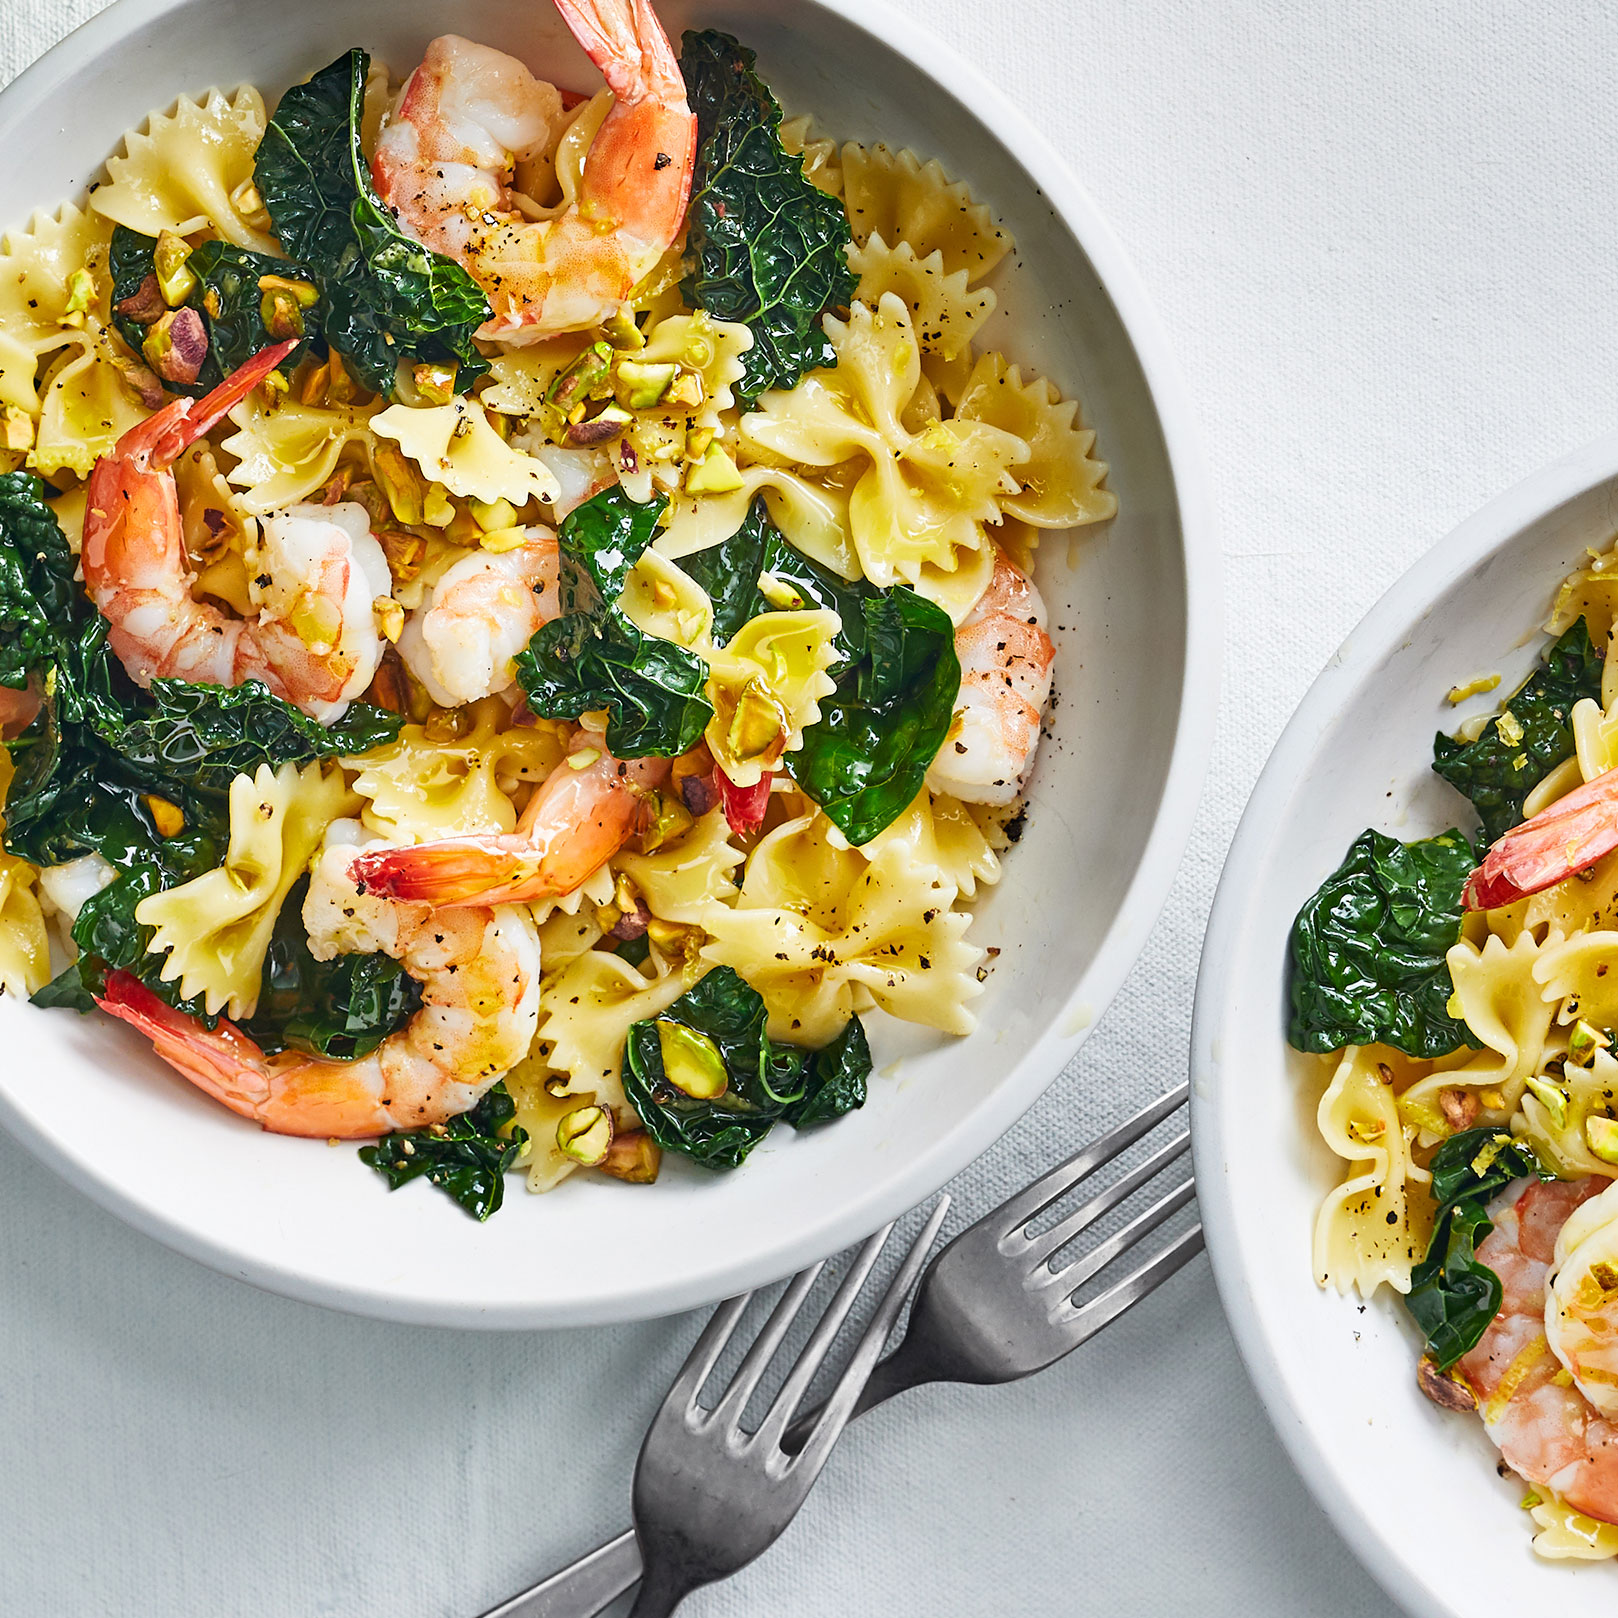 Easy pasta recipes - Farfalle With Lemon, Shrimp, and Kale